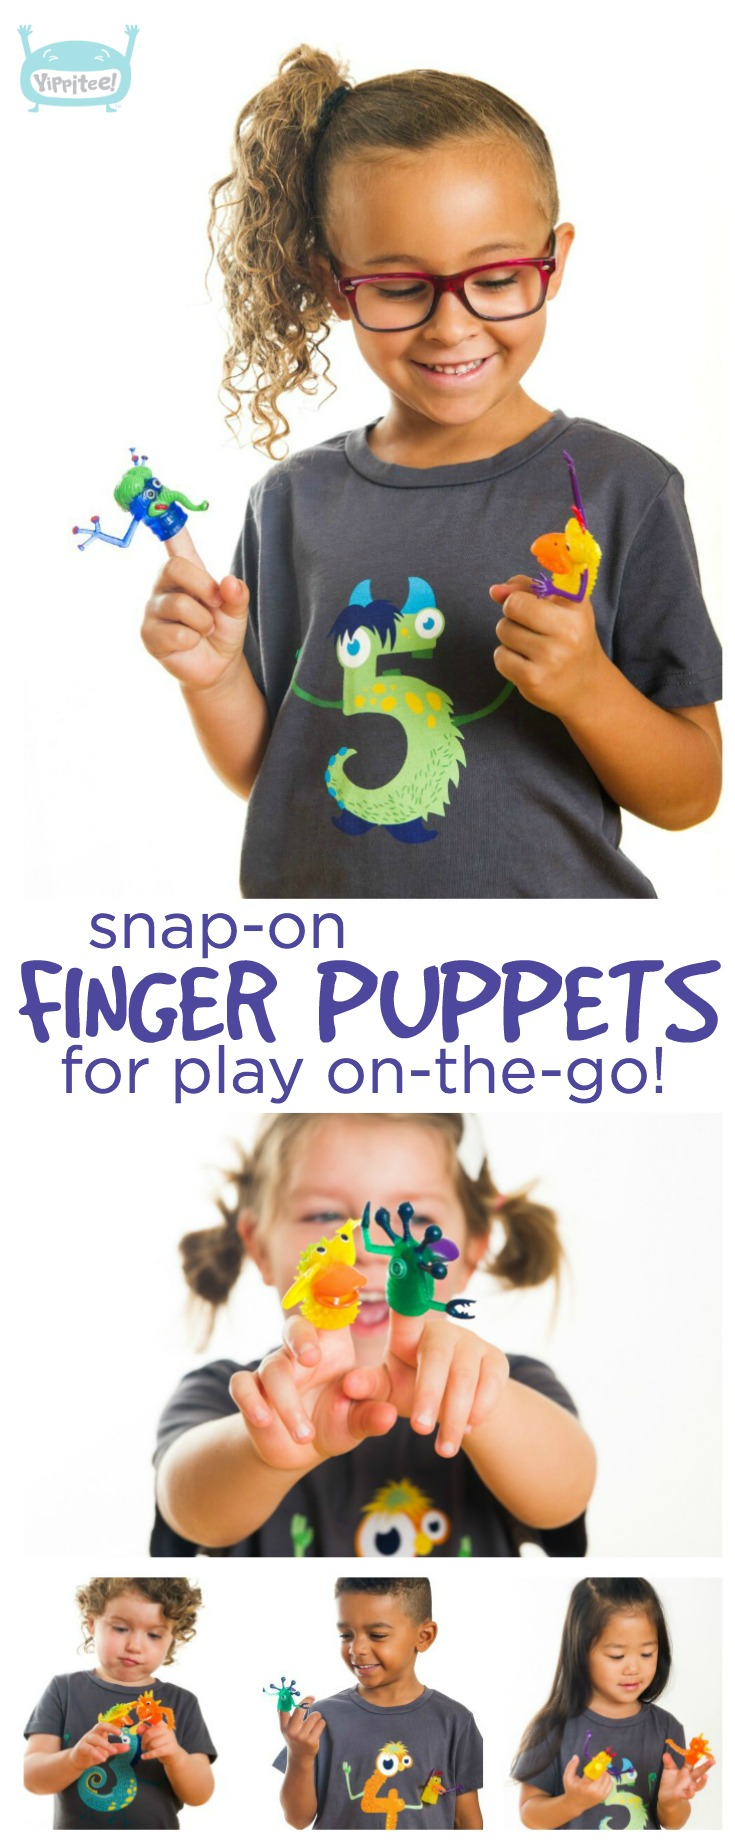 The coolest monster 5th birthday shirt there ever was! Detachable finger puppets snap on and off to keep your kiddo entertained anywhere. // 5th birthday shirt, 5 year old birthday shirt, five year old birthday shirt, fifth birthday shirt, fifth birthday t-shirt, kids birthday shirts, birthday girl shirt, birthday boy shirt #birthdayshirt #kidsbirthdayshirts #birthdaygirl #birthdayboy #monsterparty #monsterbirthday